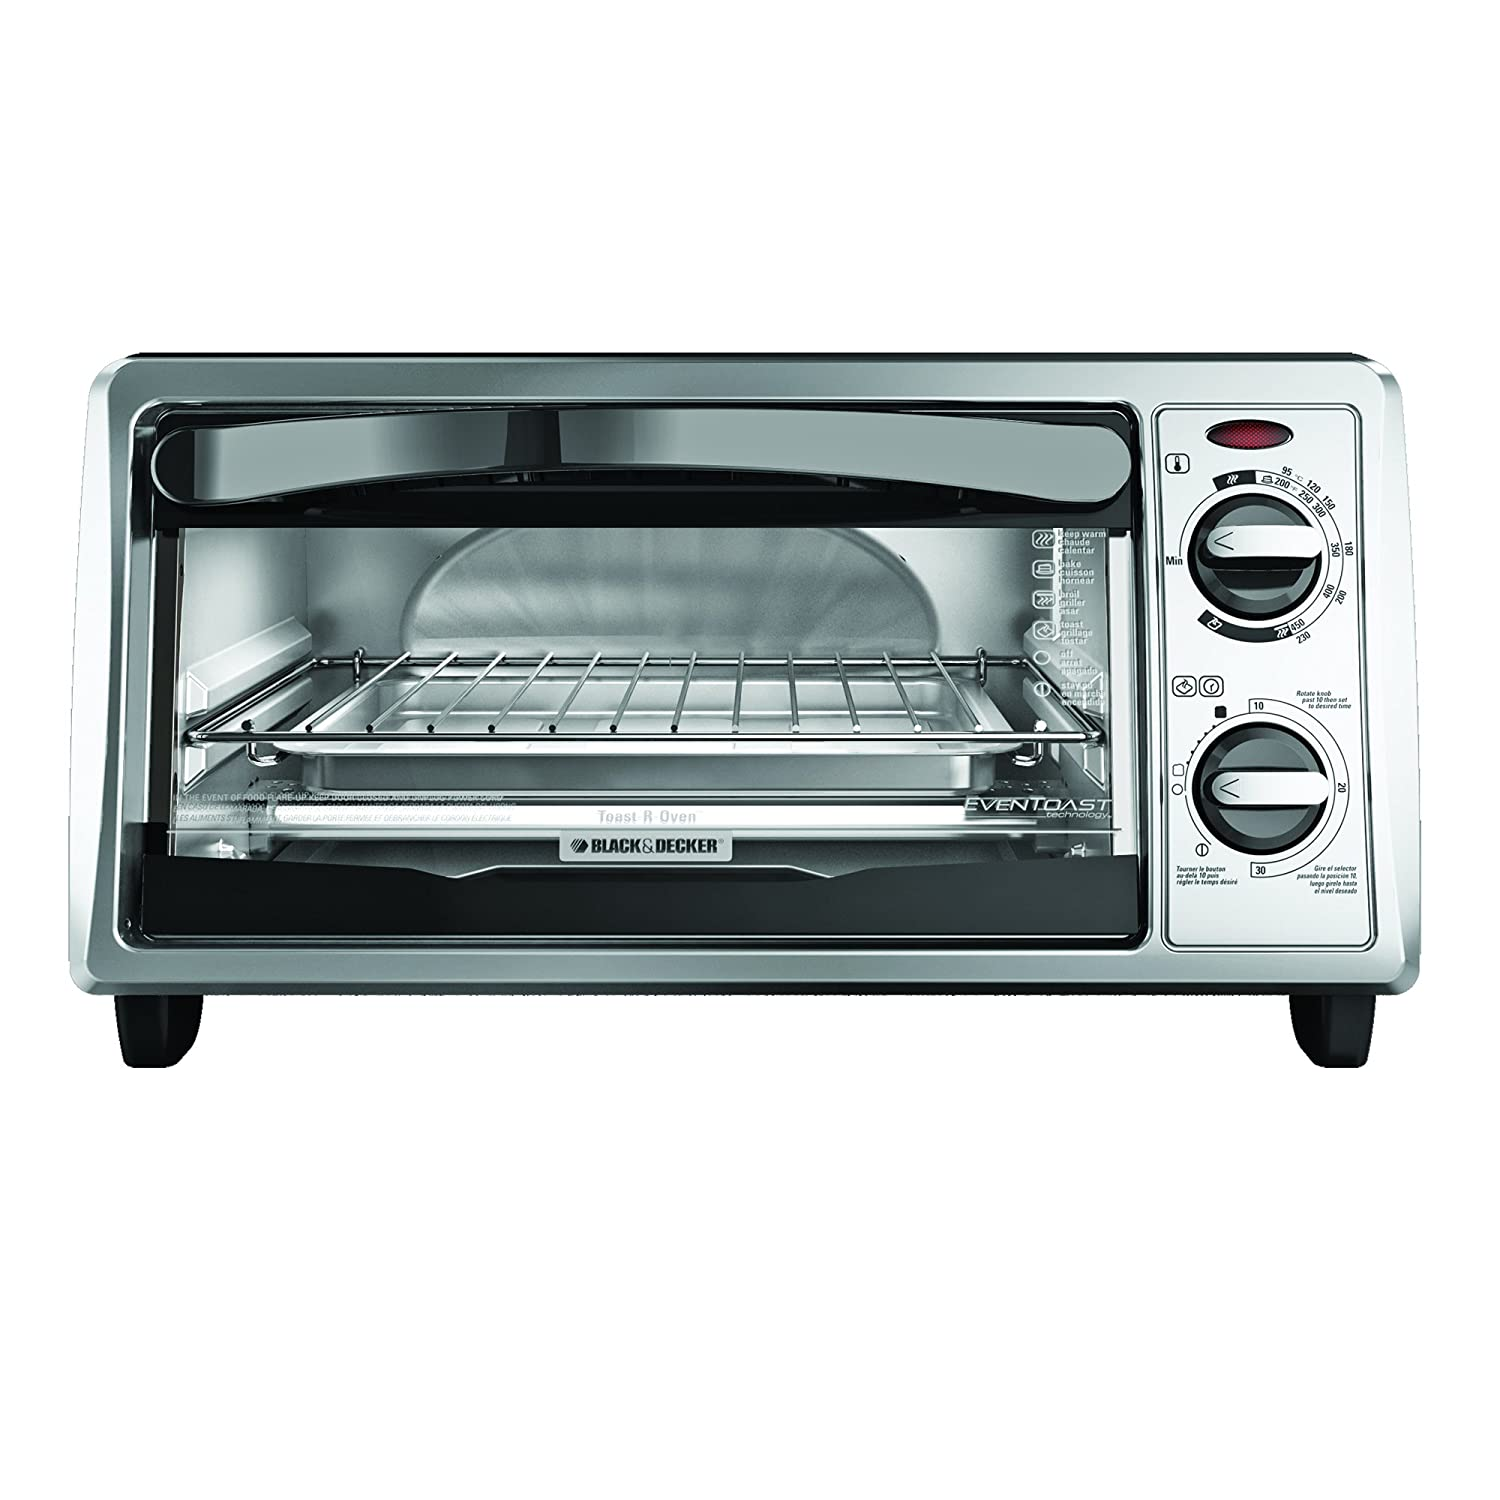 black decker for toaster com amazon oven dining slice dp kitchen silver sale